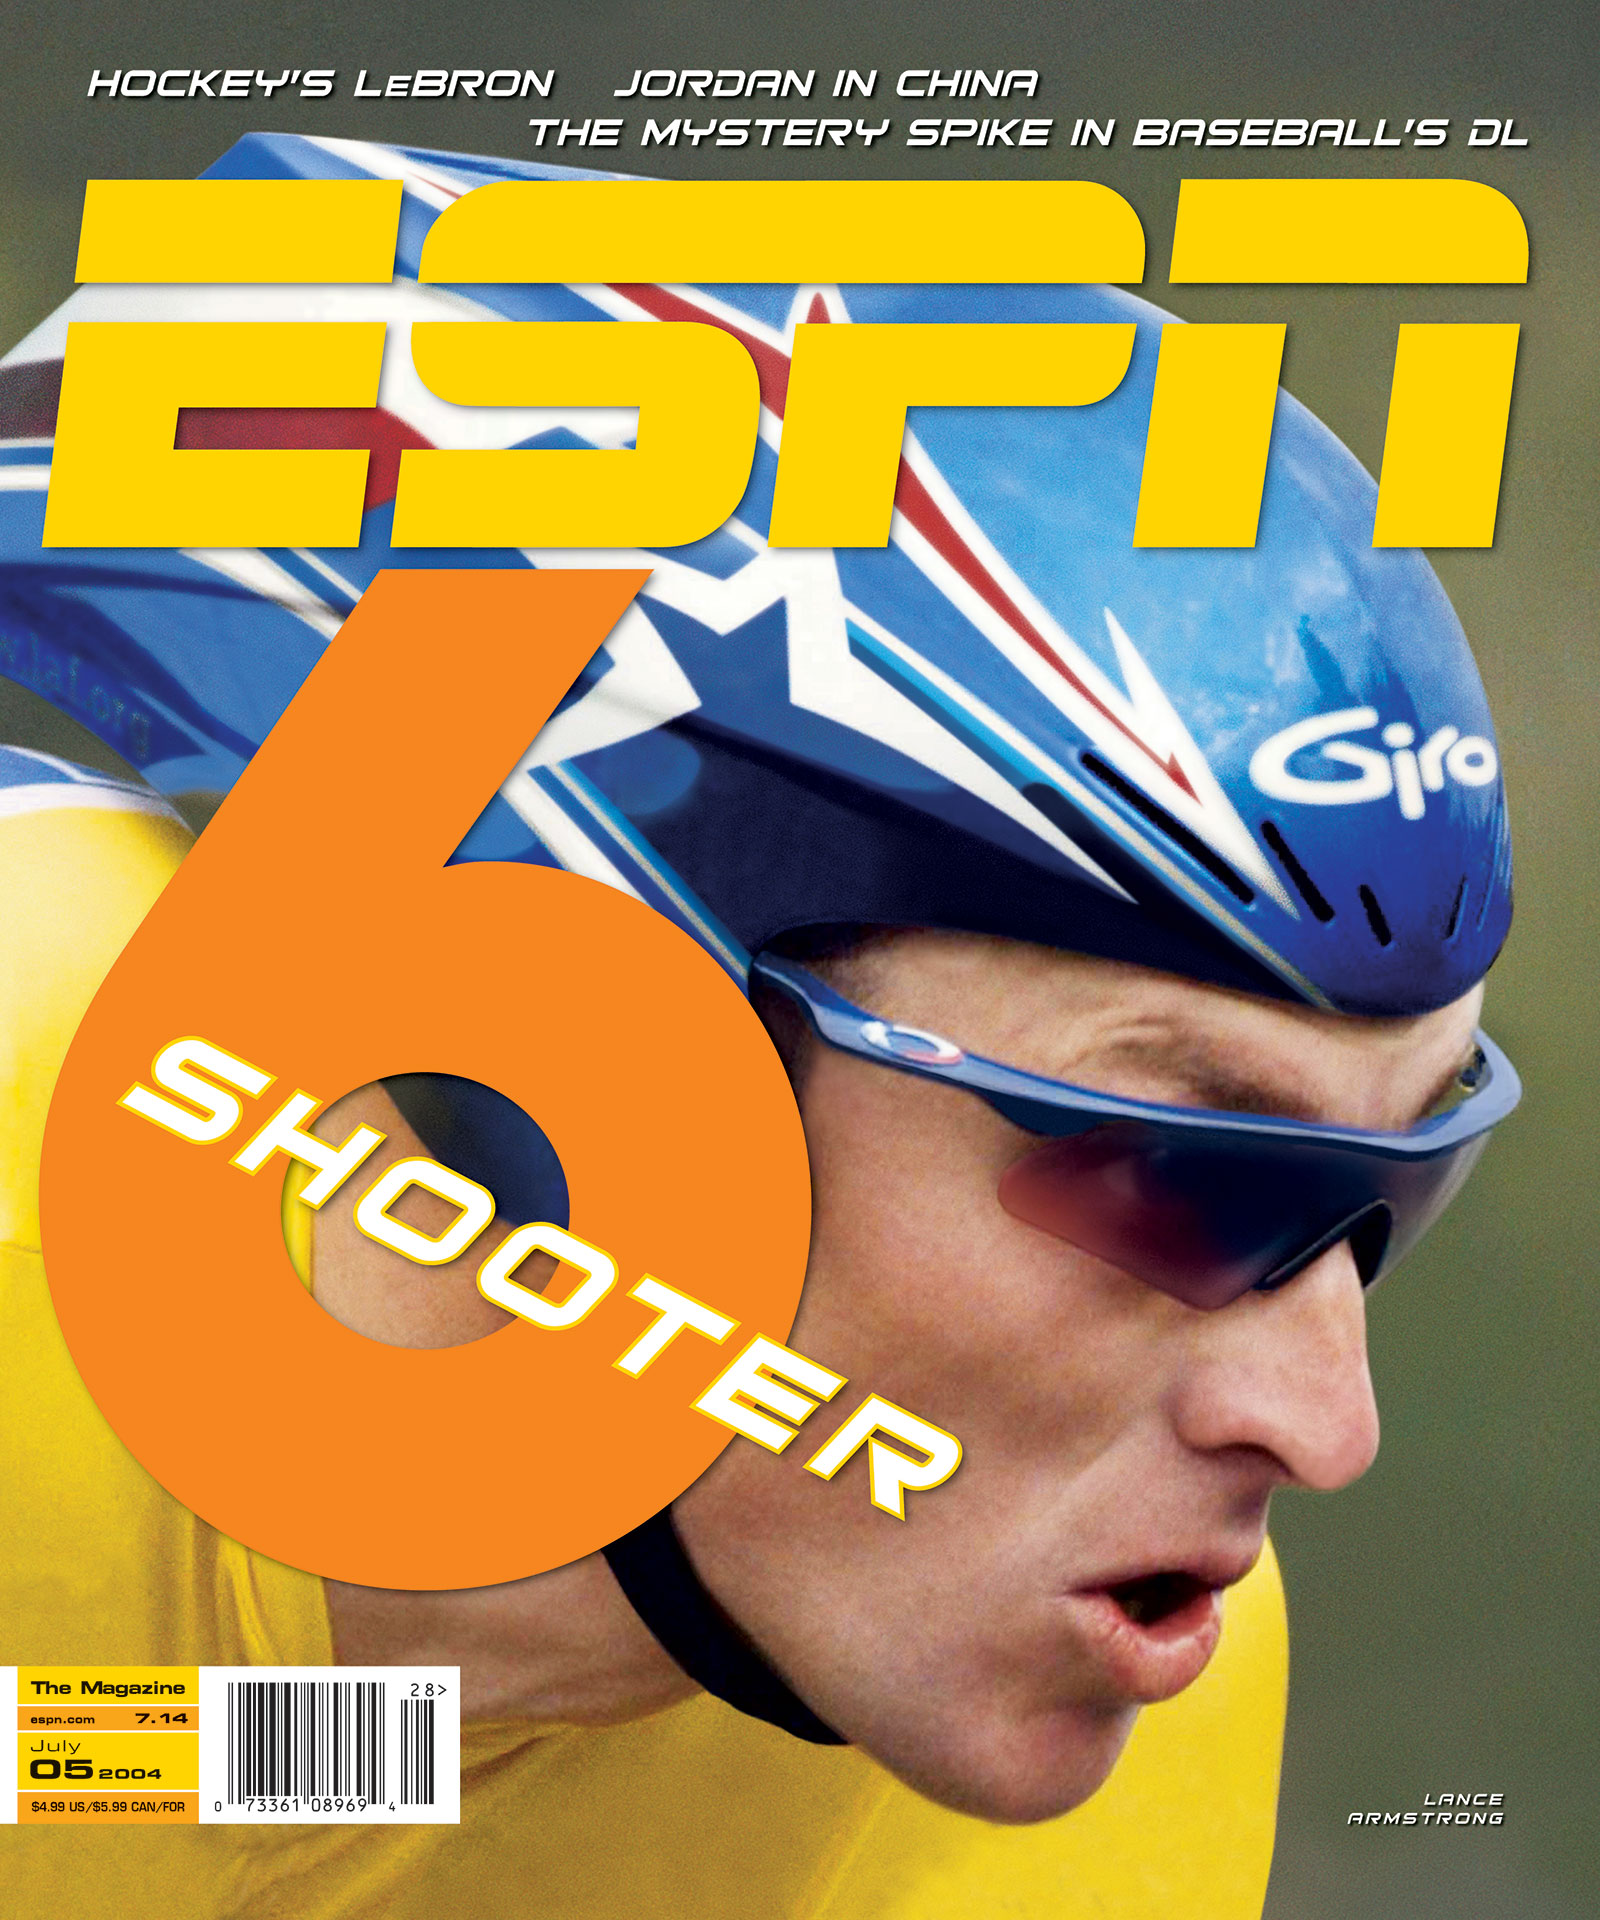 ESPN The Magazine 2004 Covers